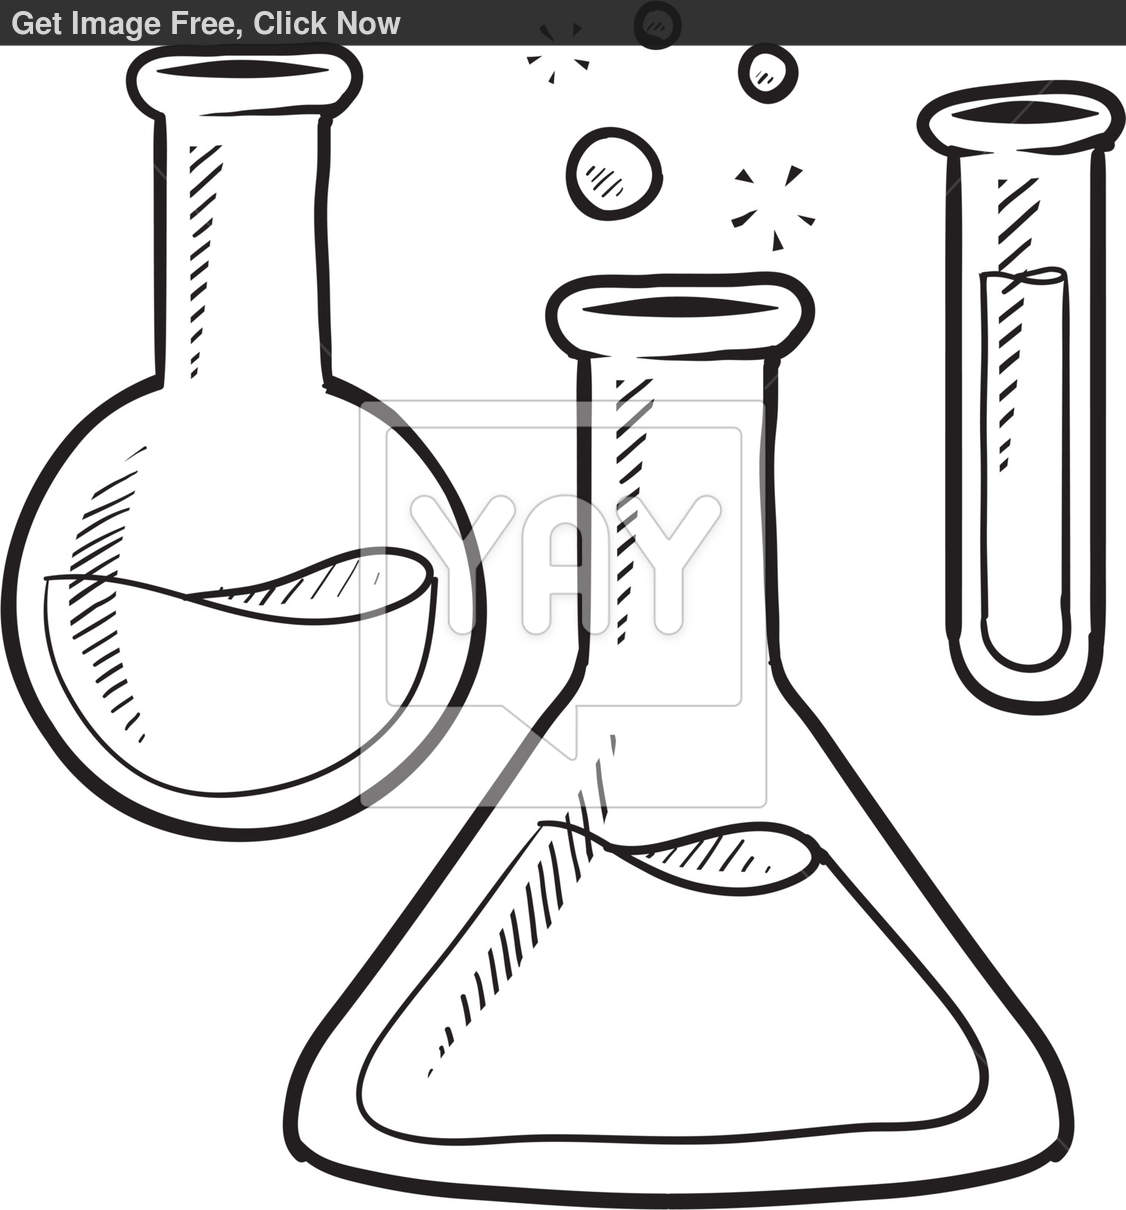 Chemicals Clipart Black And White Chemicals Black And